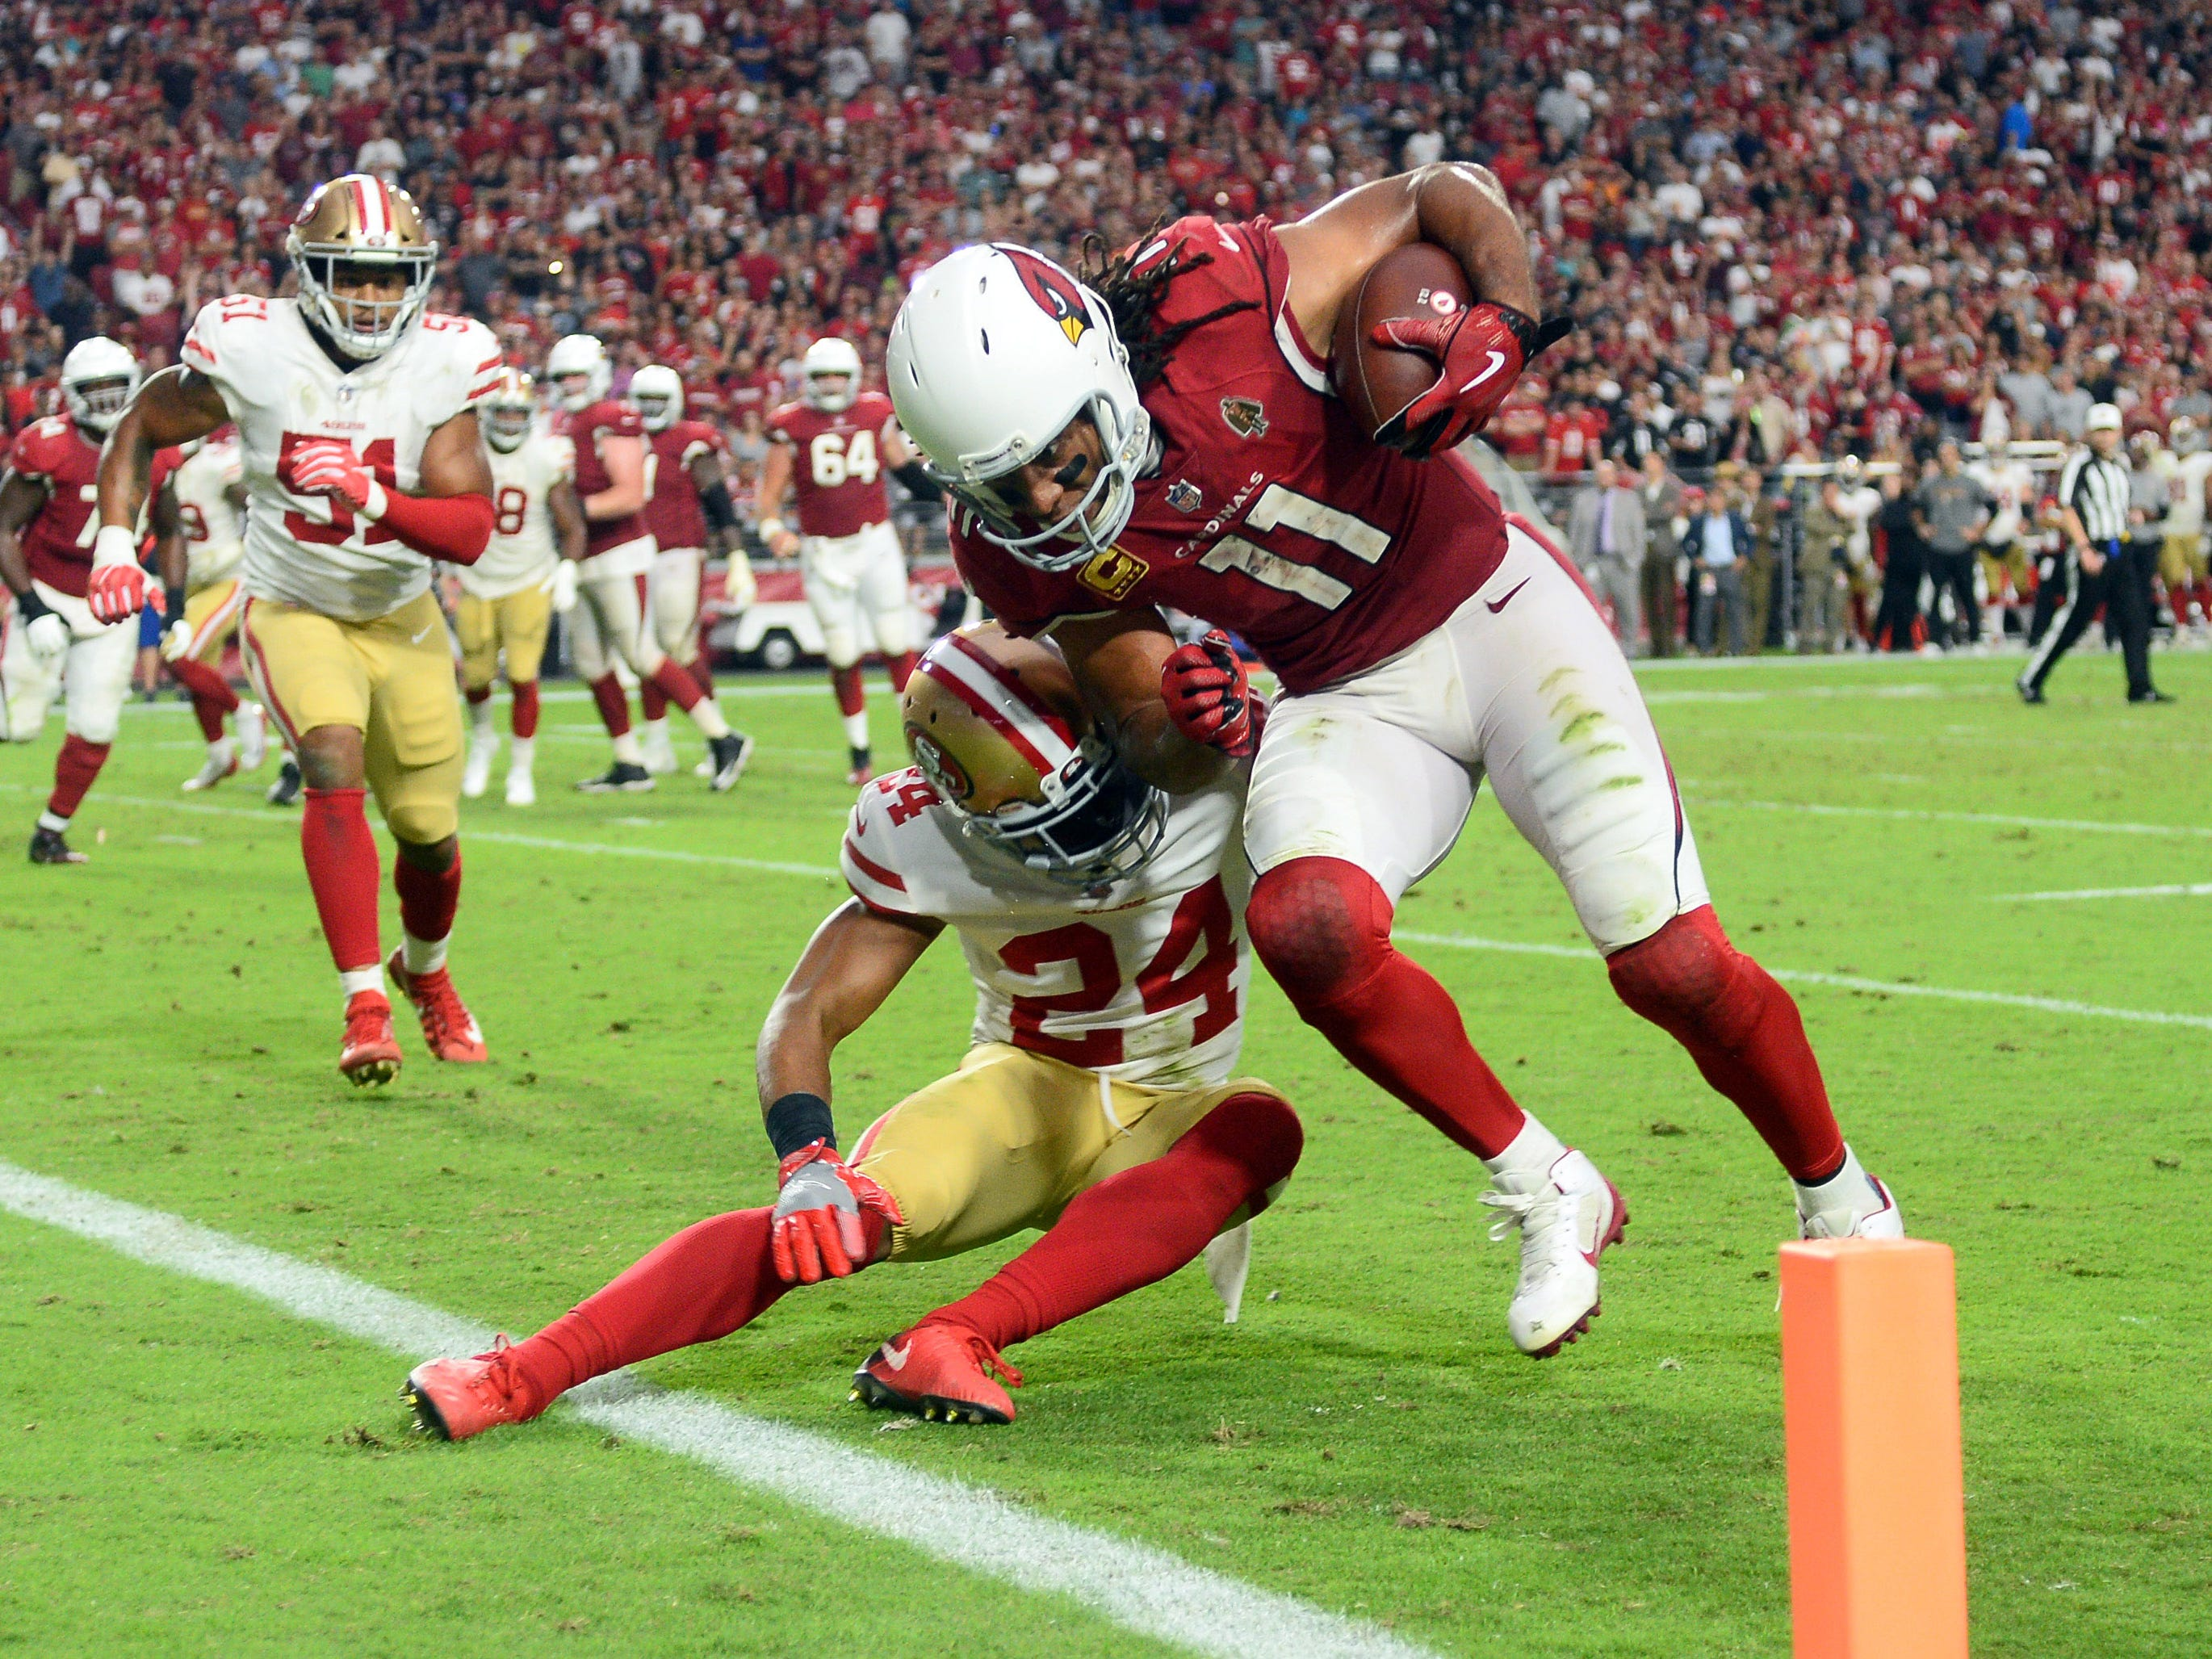 Oct 28, 2018; Glendale, AZ, USA; Arizona Cardinals wide receiver Larry Fitzgerald (11) breaks the tackle of San Francisco 49ers defensive back K'Waun Williams (24) to score a two point conversion during the second half at State Farm Stadium.